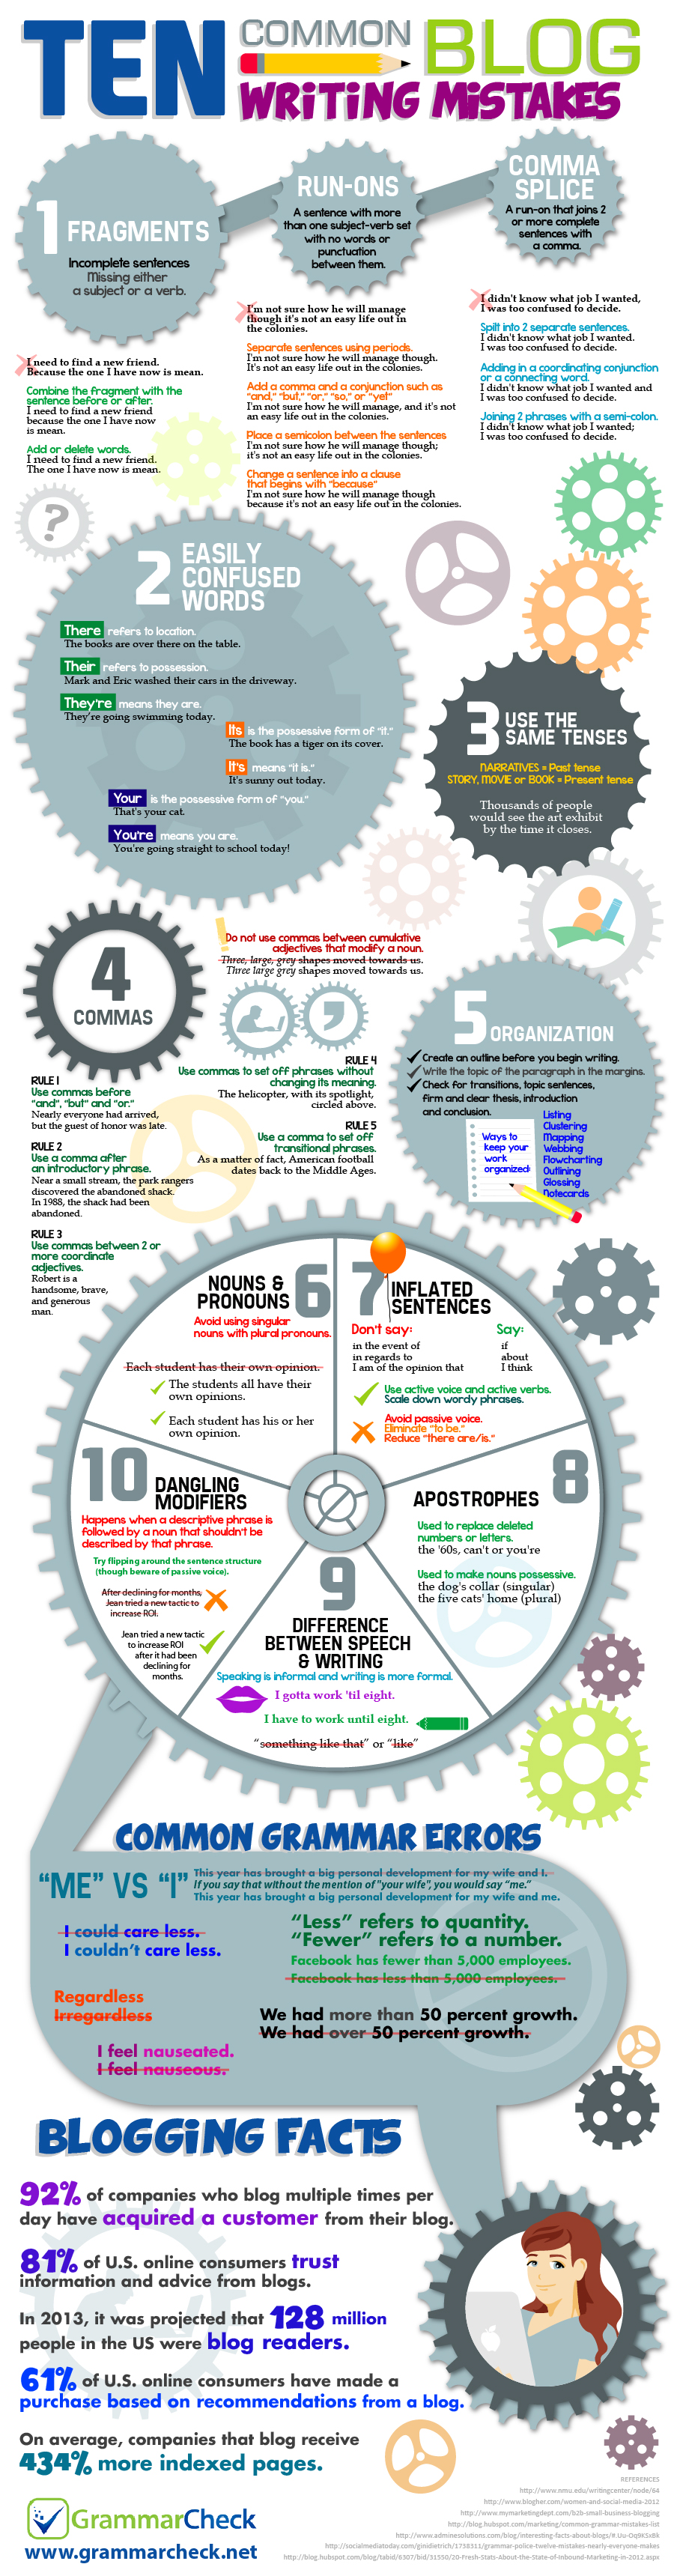 10 Common Blog Writing Mistakes (Infographic)